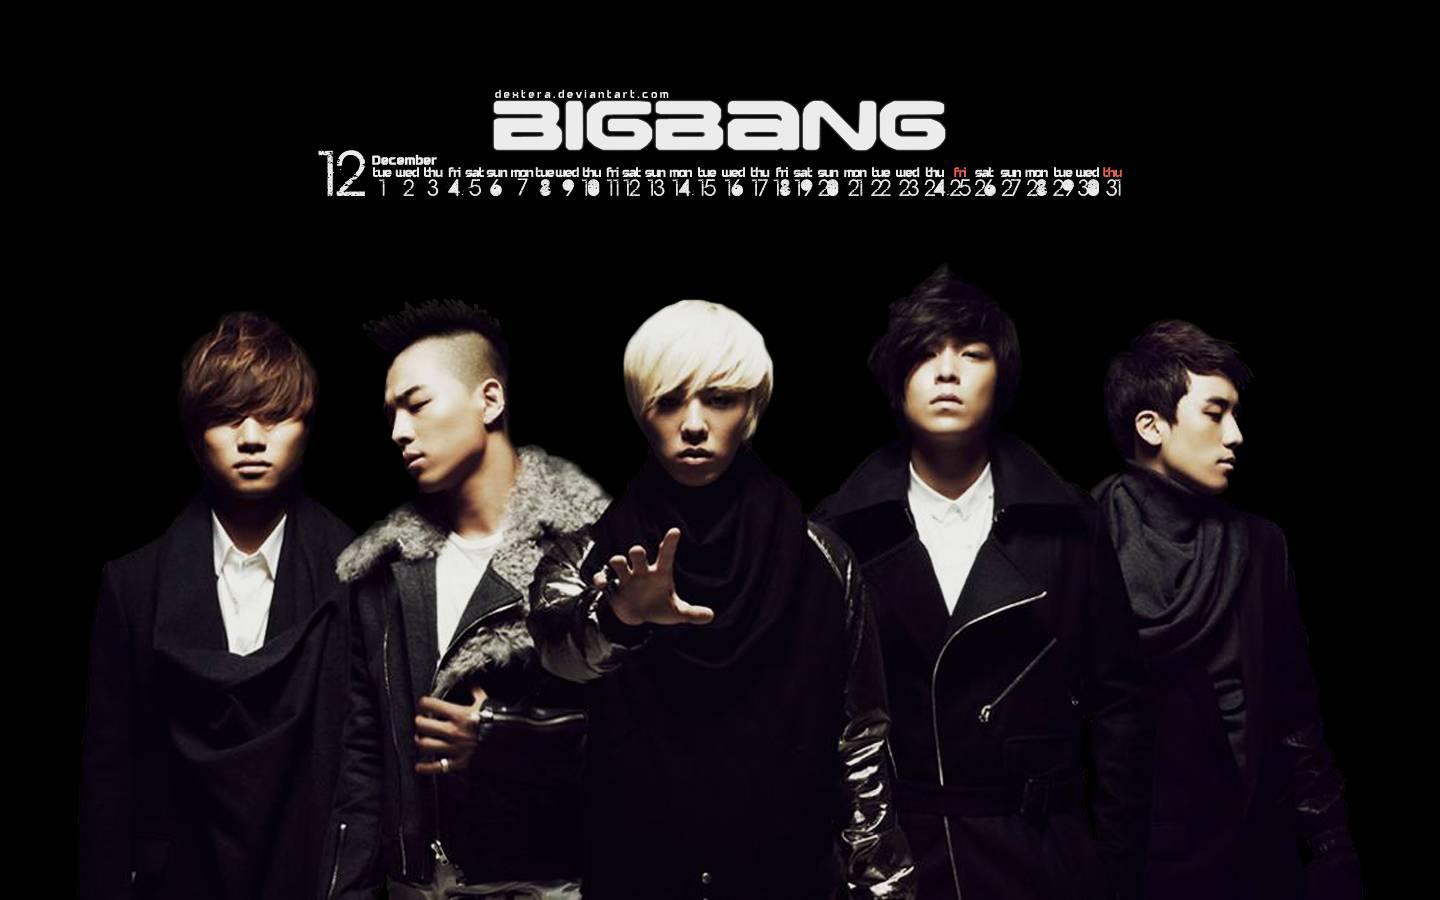 big-bang-wallpaper